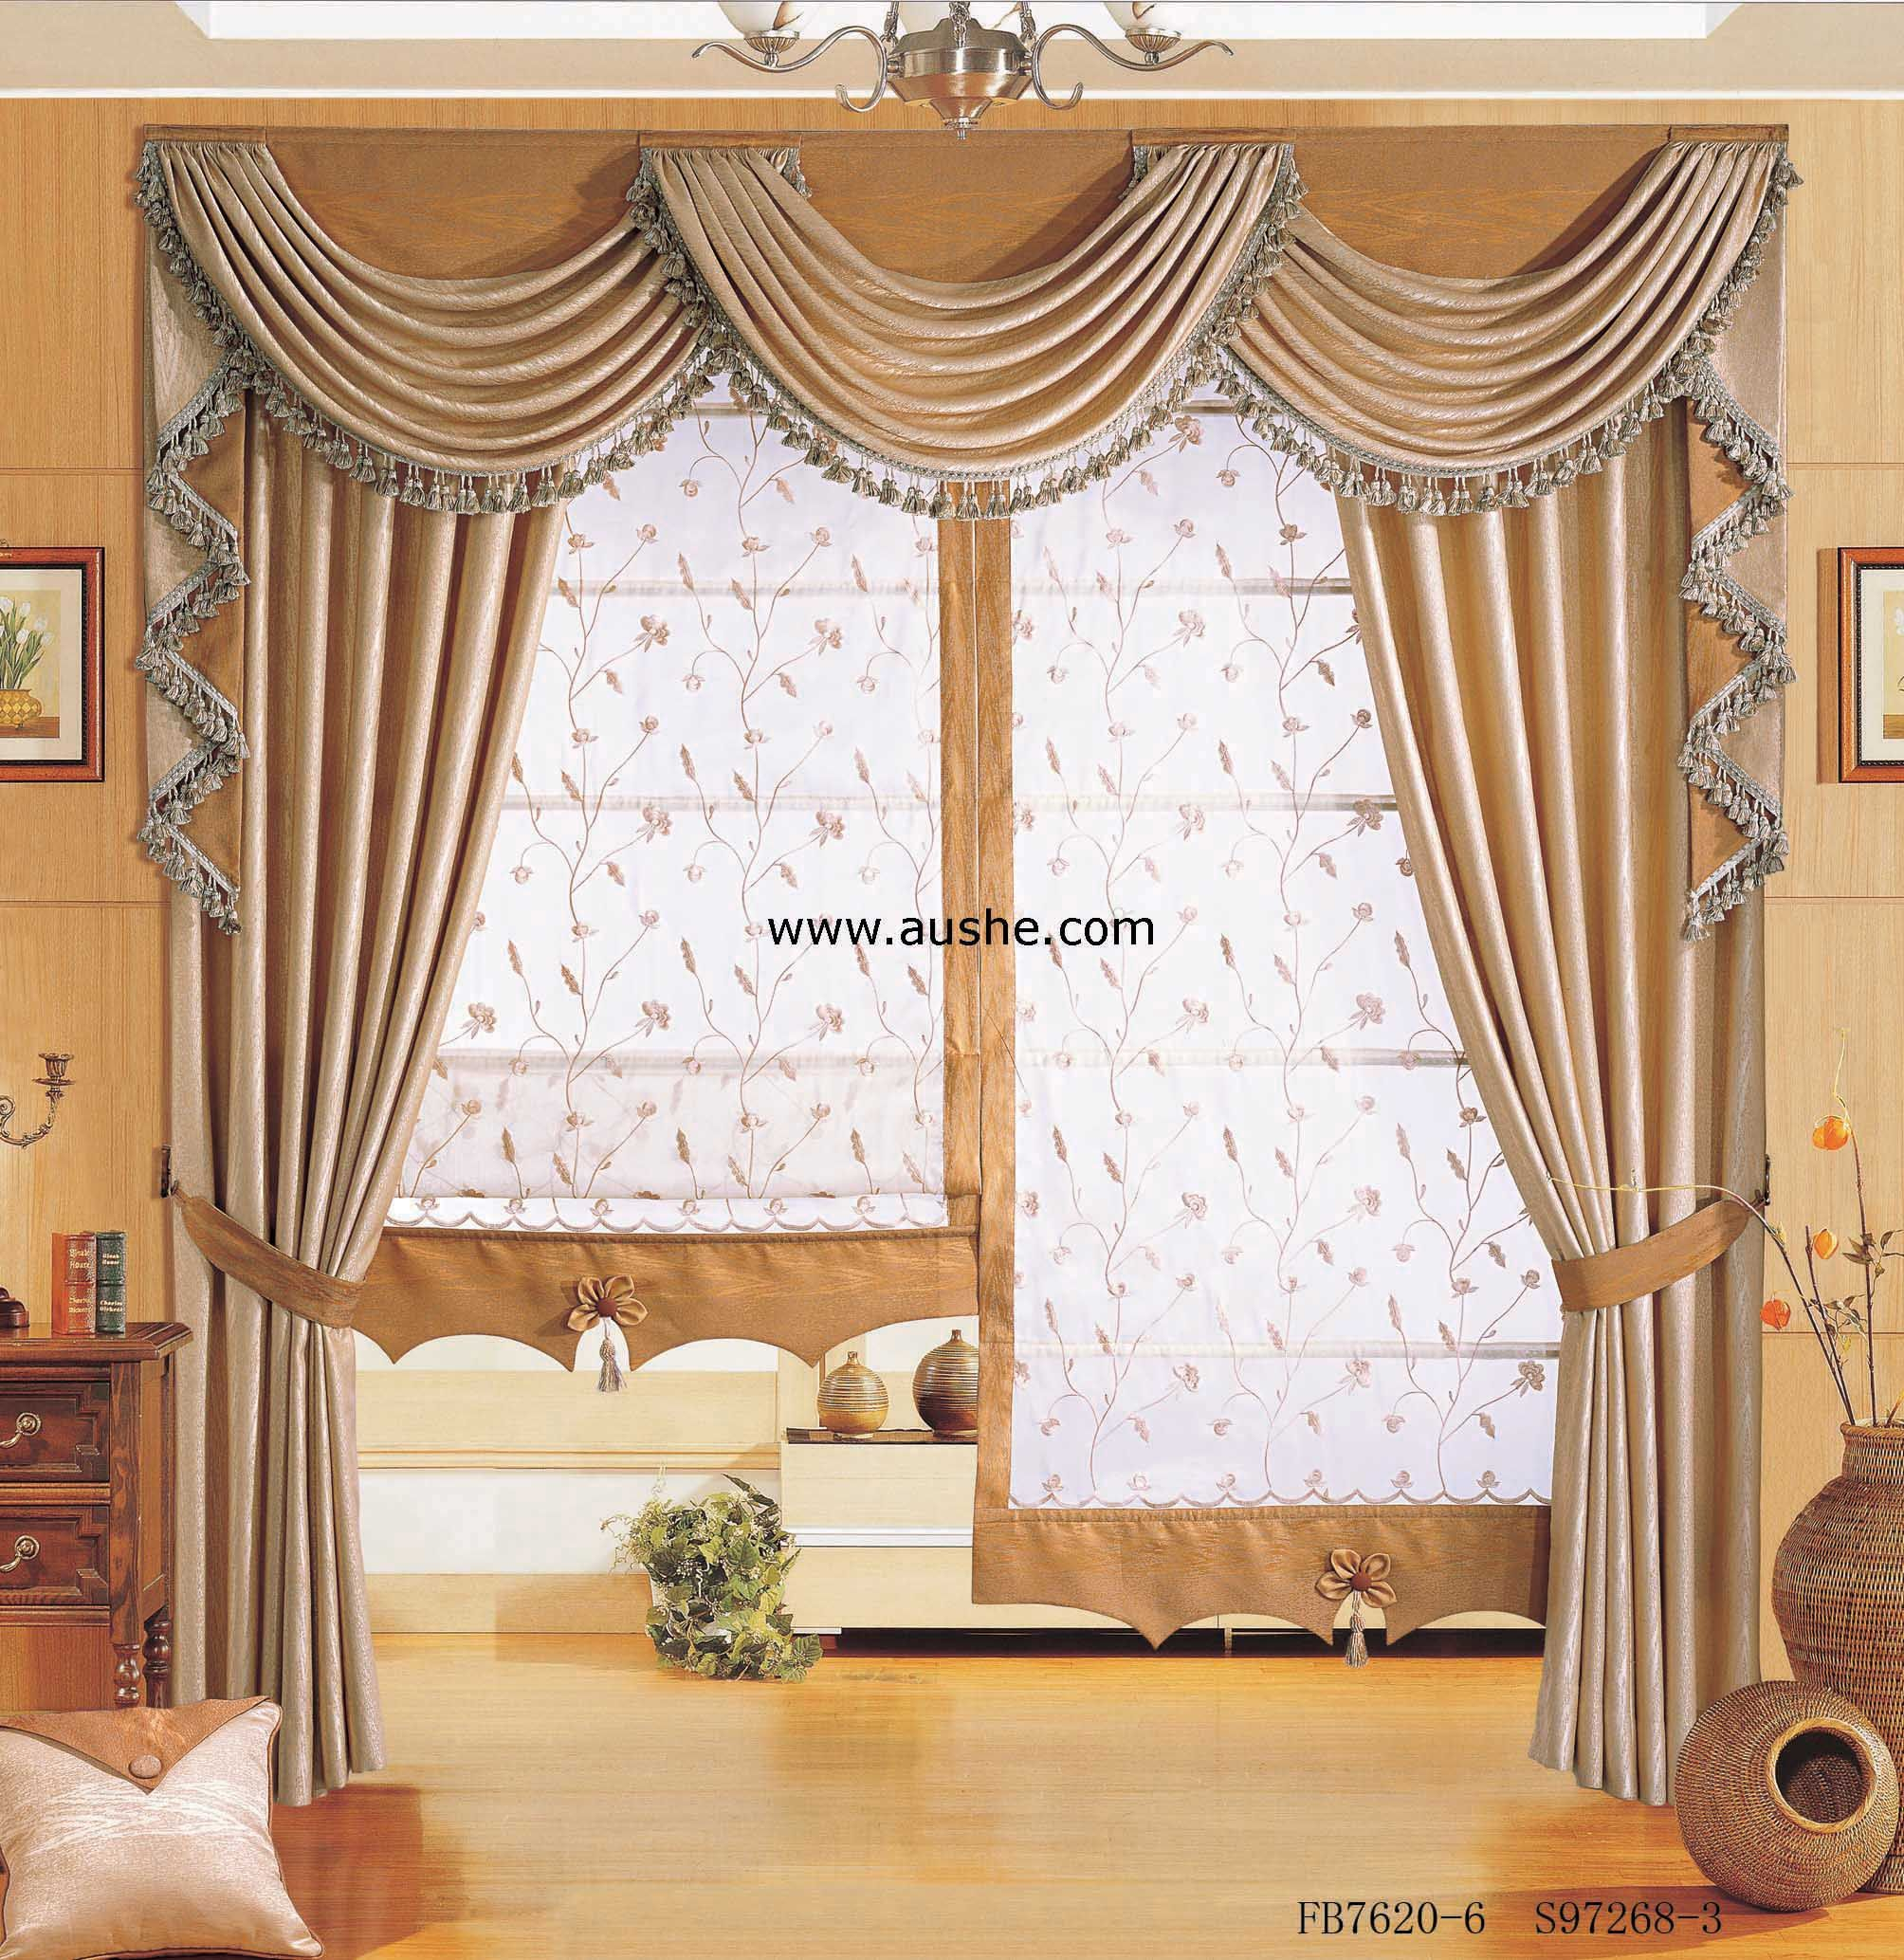 Curtain valances google search elegant drapery pinterest curtain valances valance and - Curtain photo designs ...